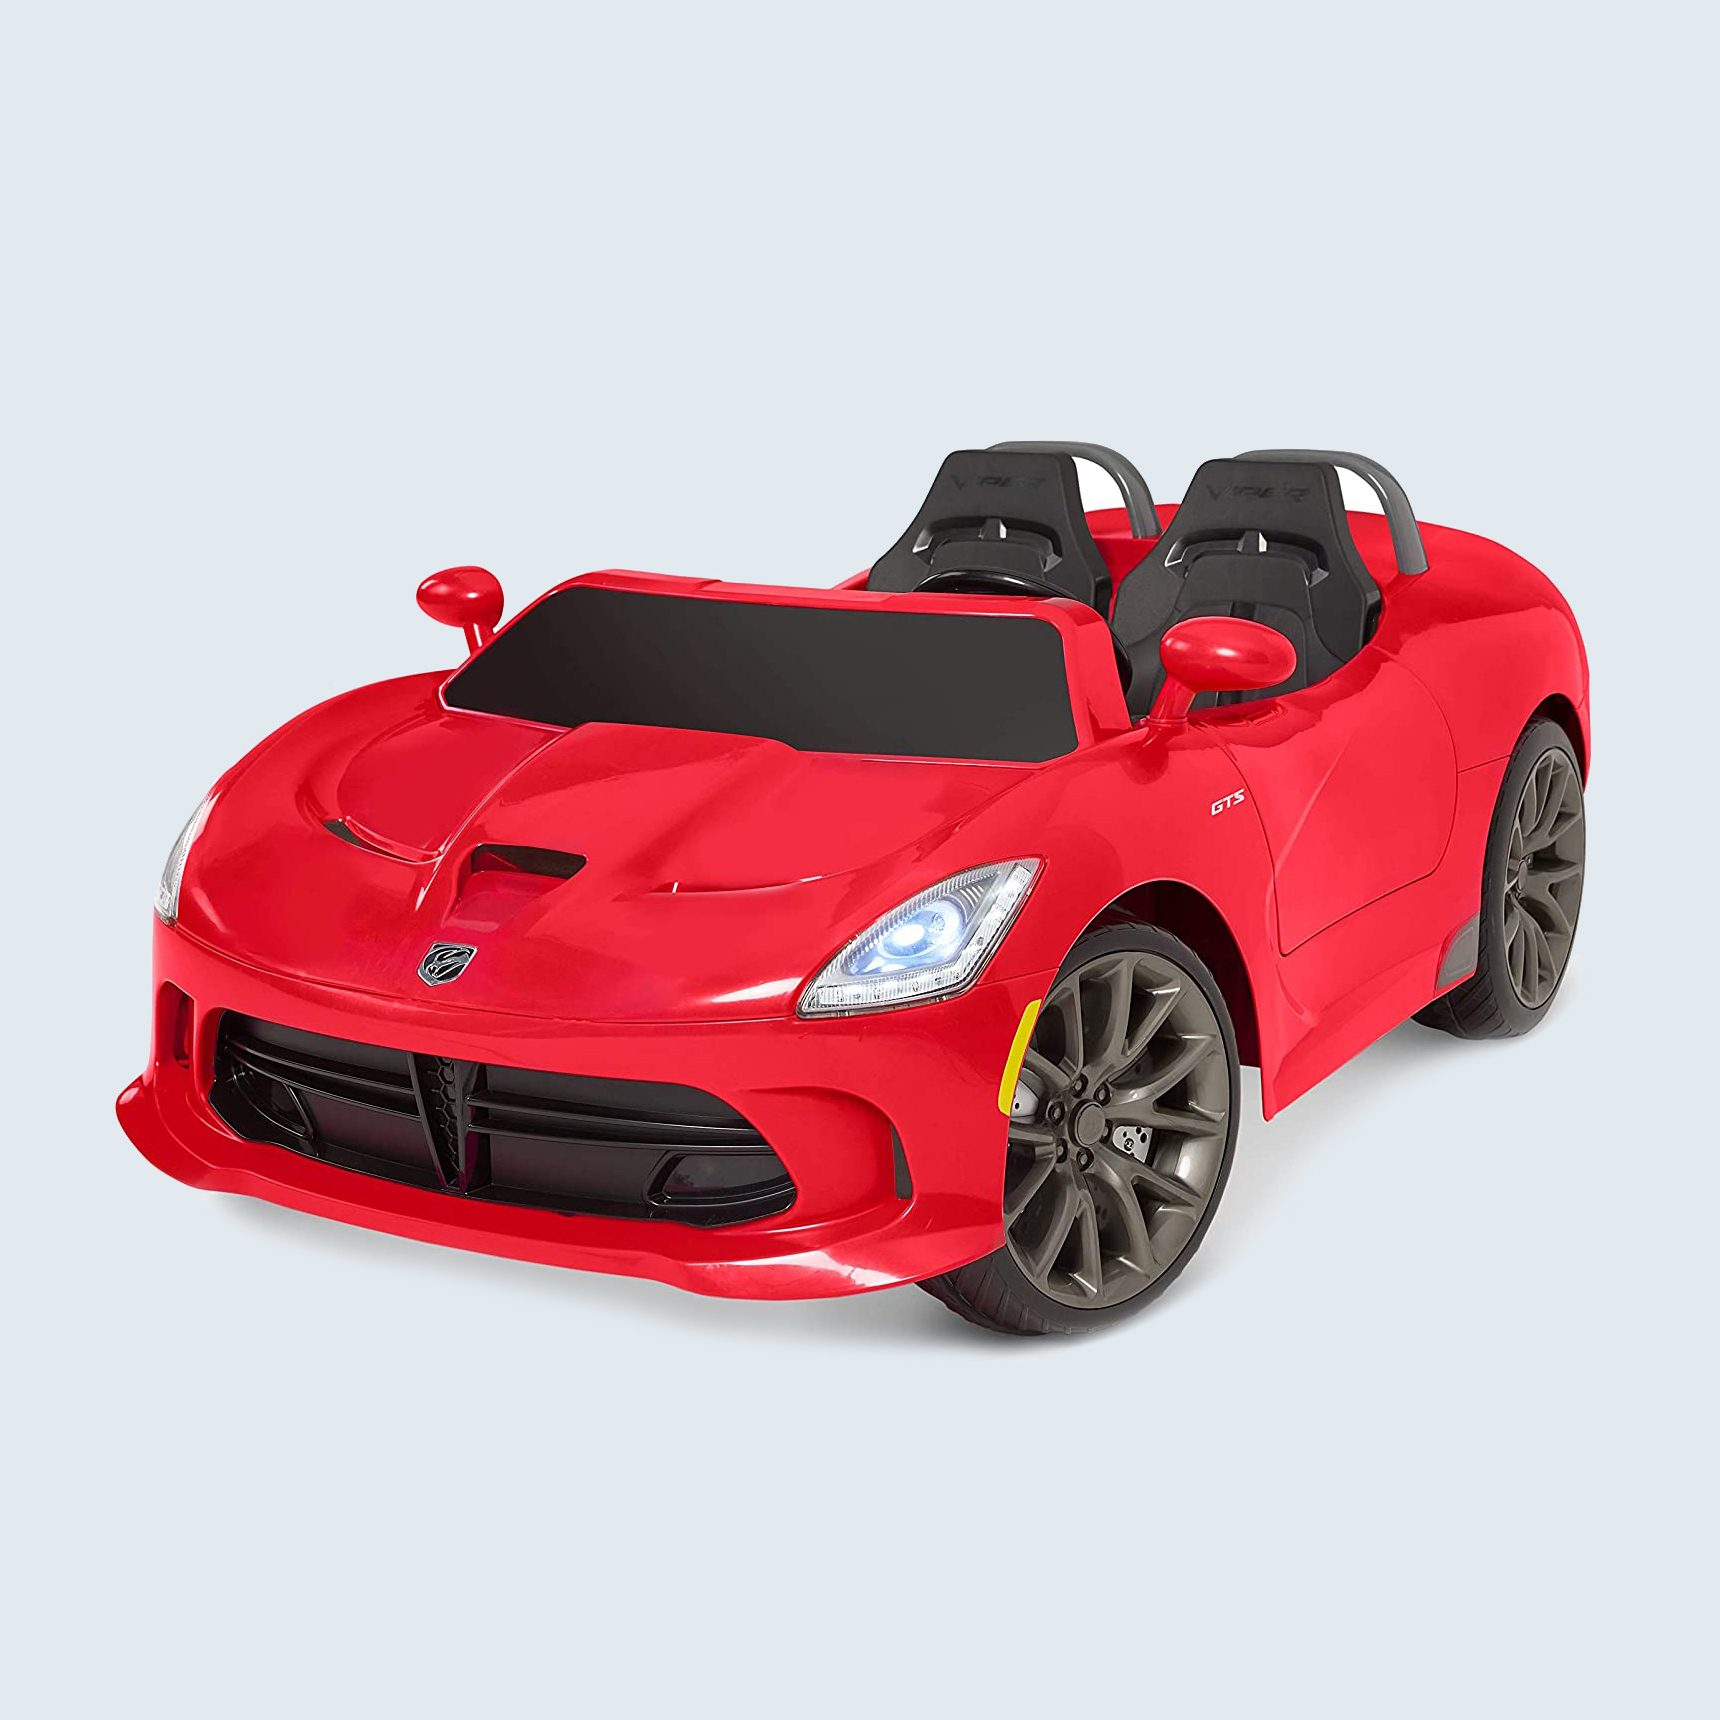 Kid Trax Dodge Viper Toddler Ride On Toy on amazon warehouse